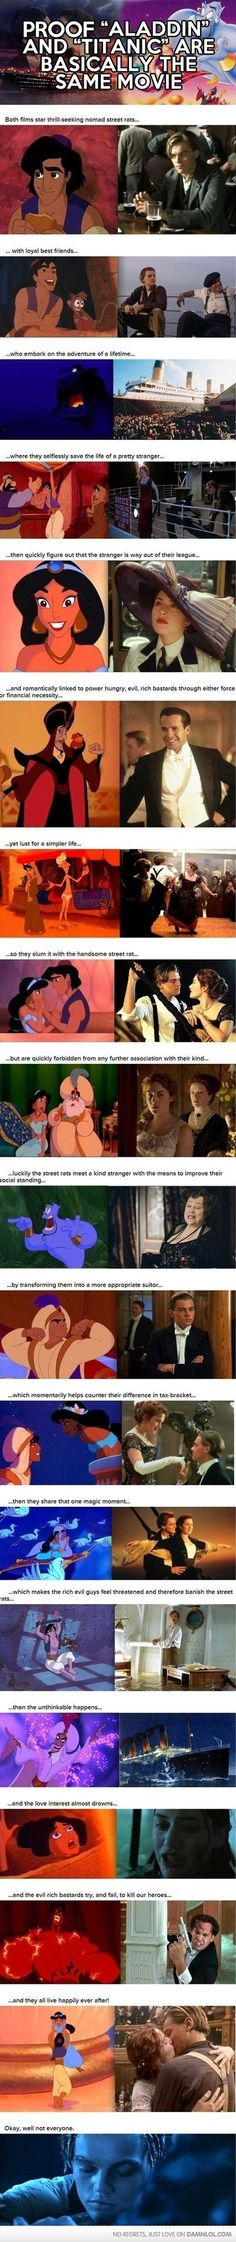 Proof That Aladdin And Titanic Are Basically The Same Movie - LOL